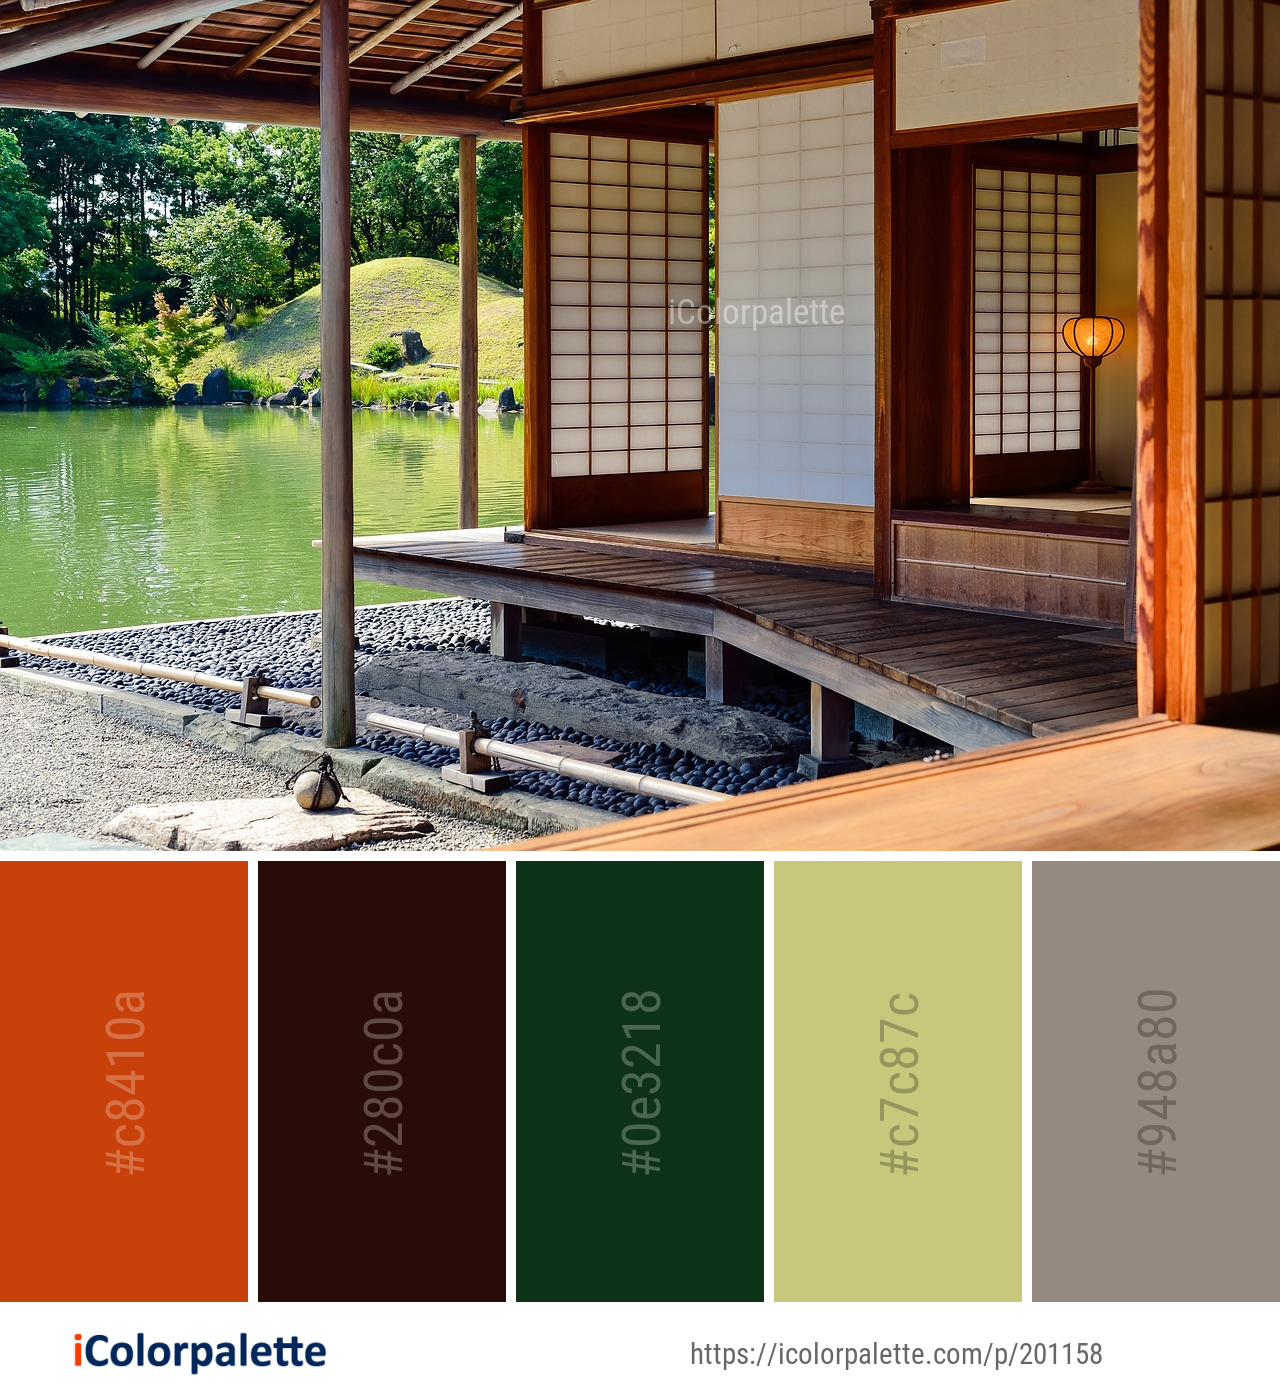 1 Deck Color Palette Ideas In 2020 Icolorpalette